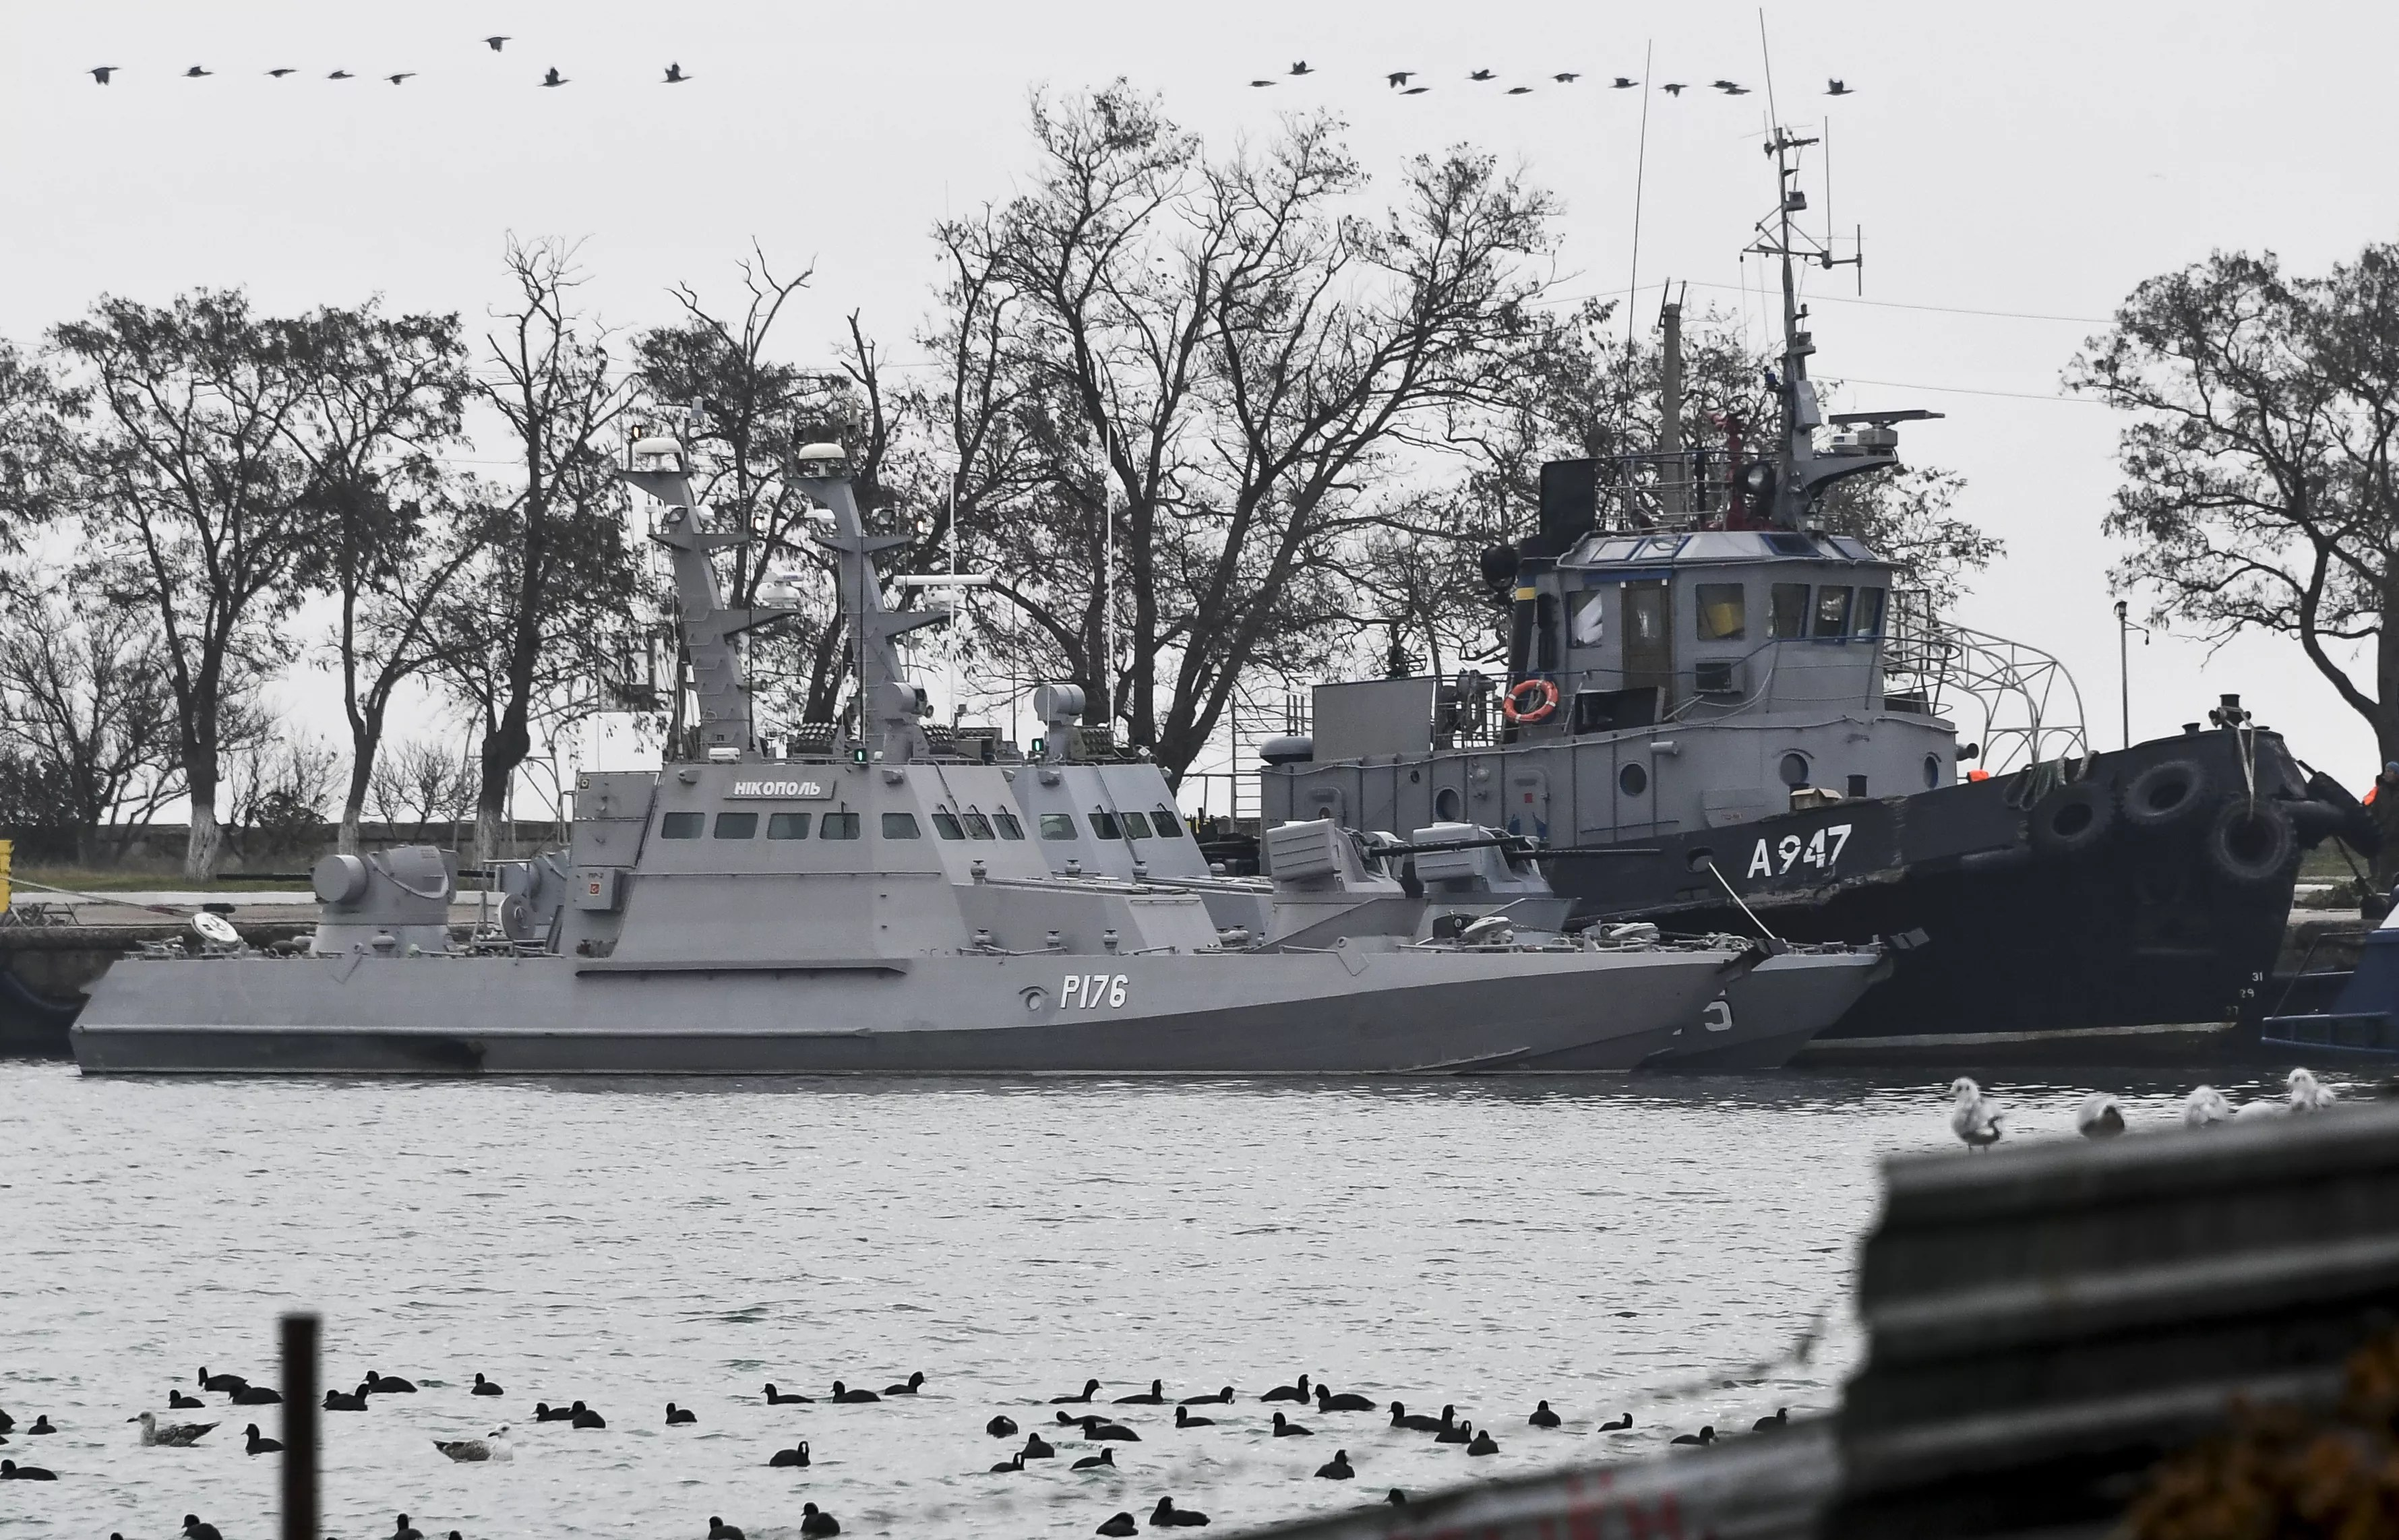 Ukrainian naval vessels seized by Russia in international waters on November 25